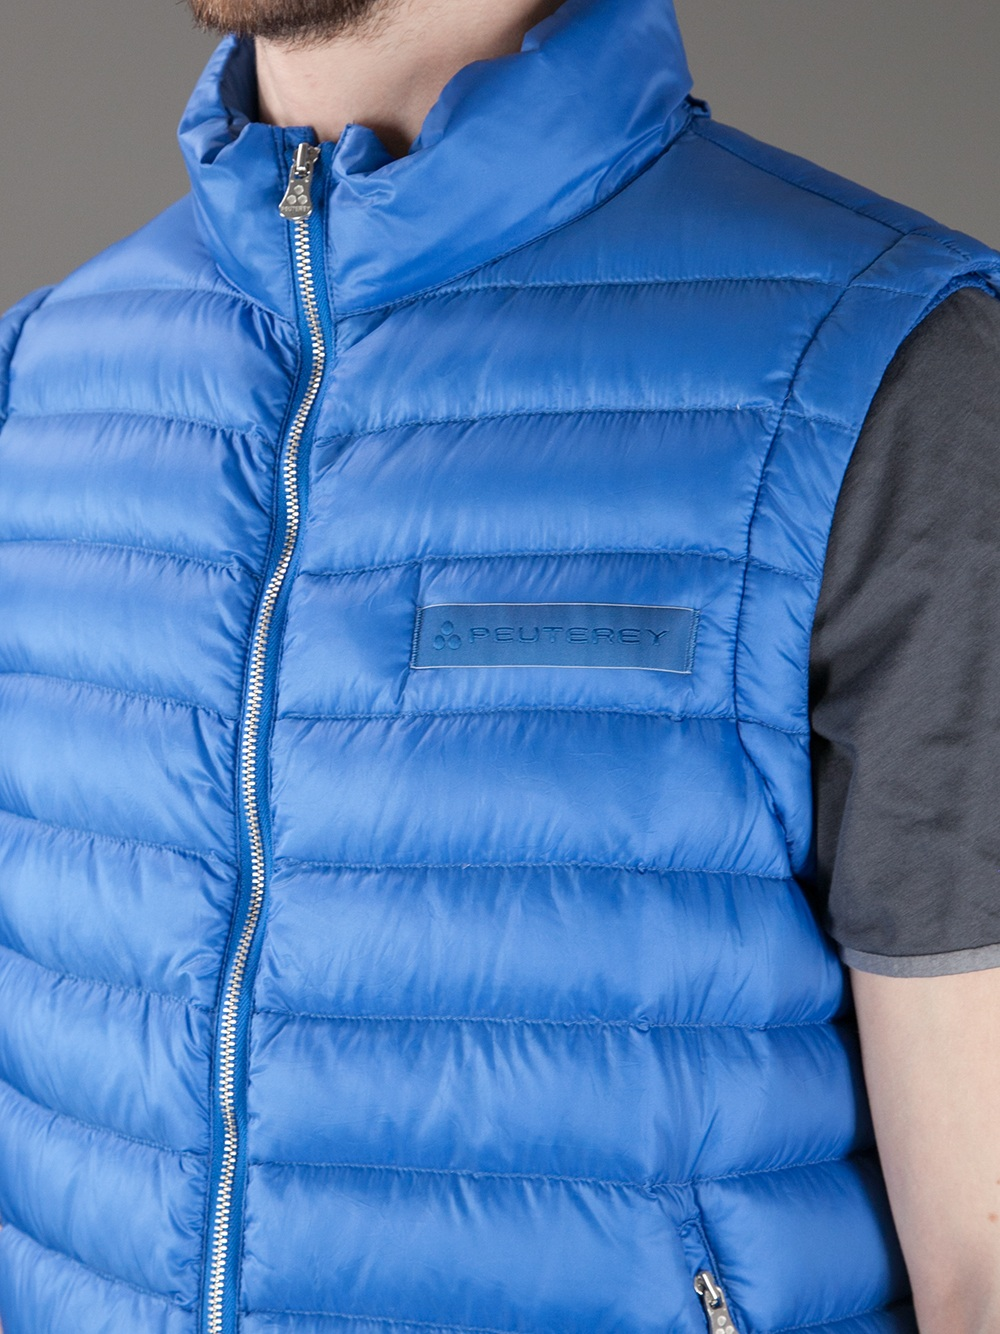 reputable site cf0bd 5a9e1 Peuterey Blue Barcelona Padded Gilet for men